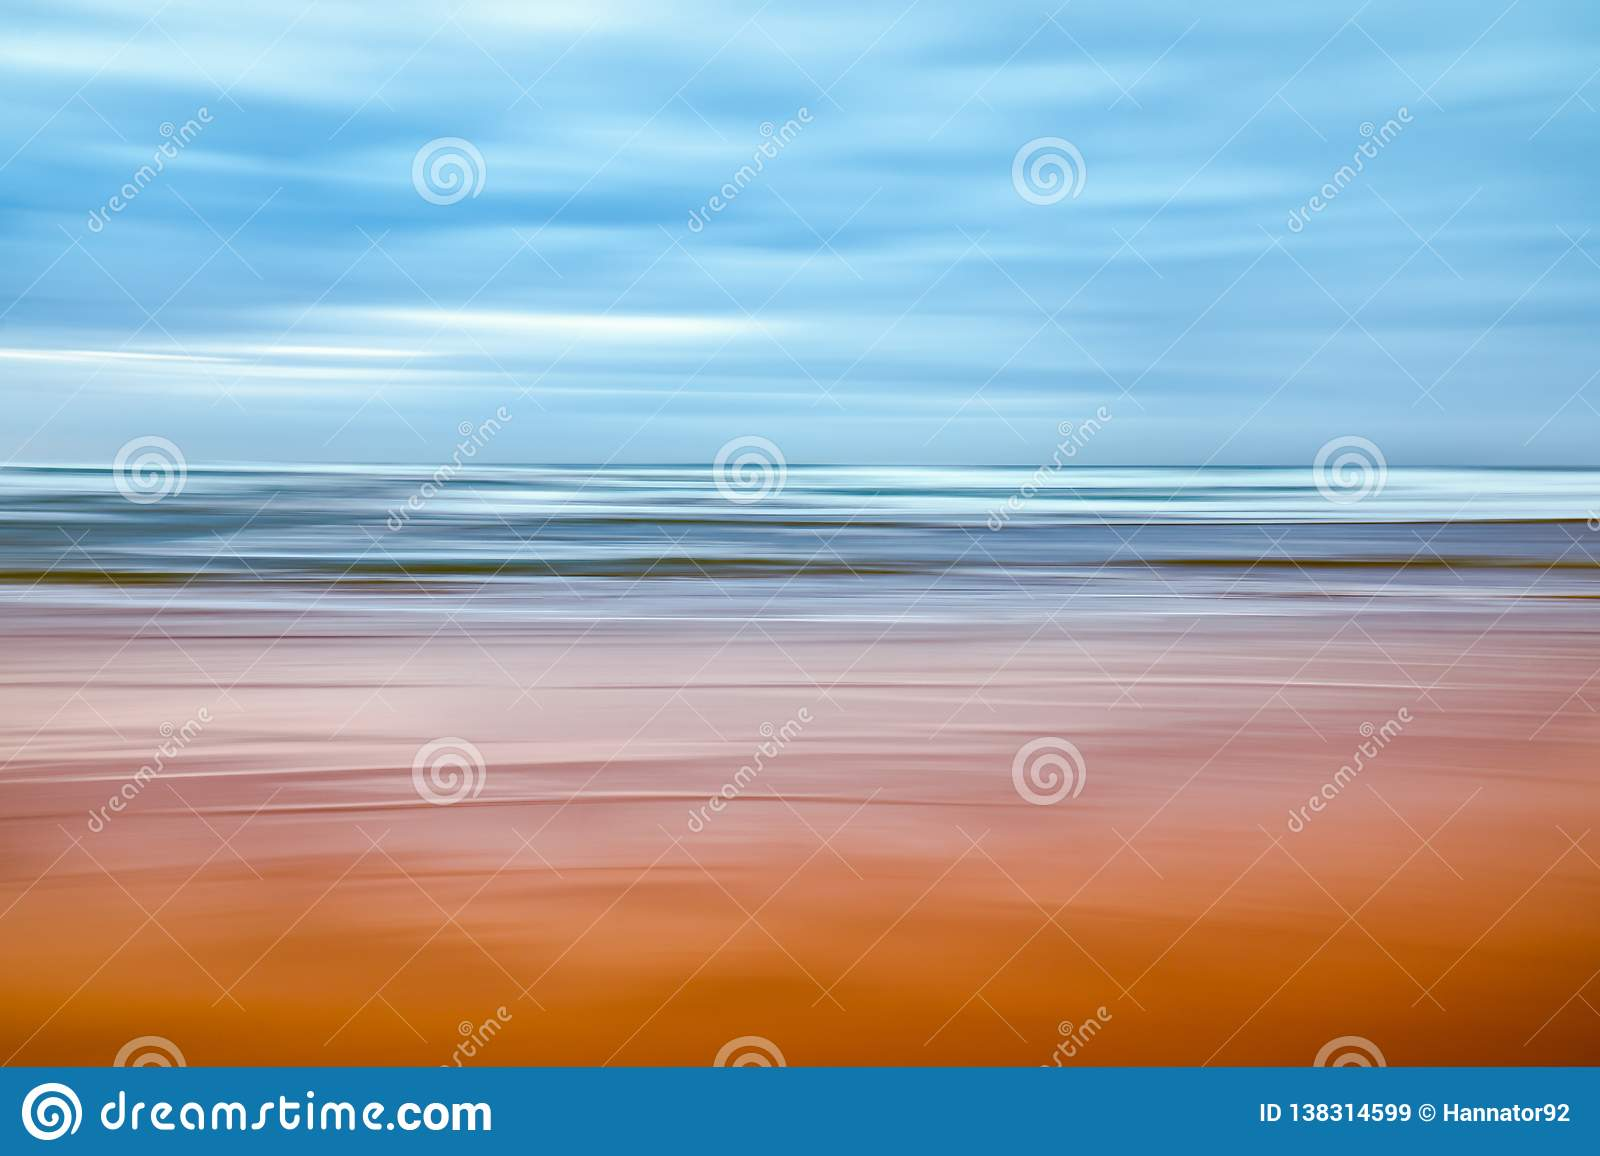 Abstract background in blue, pink, and yellow colors